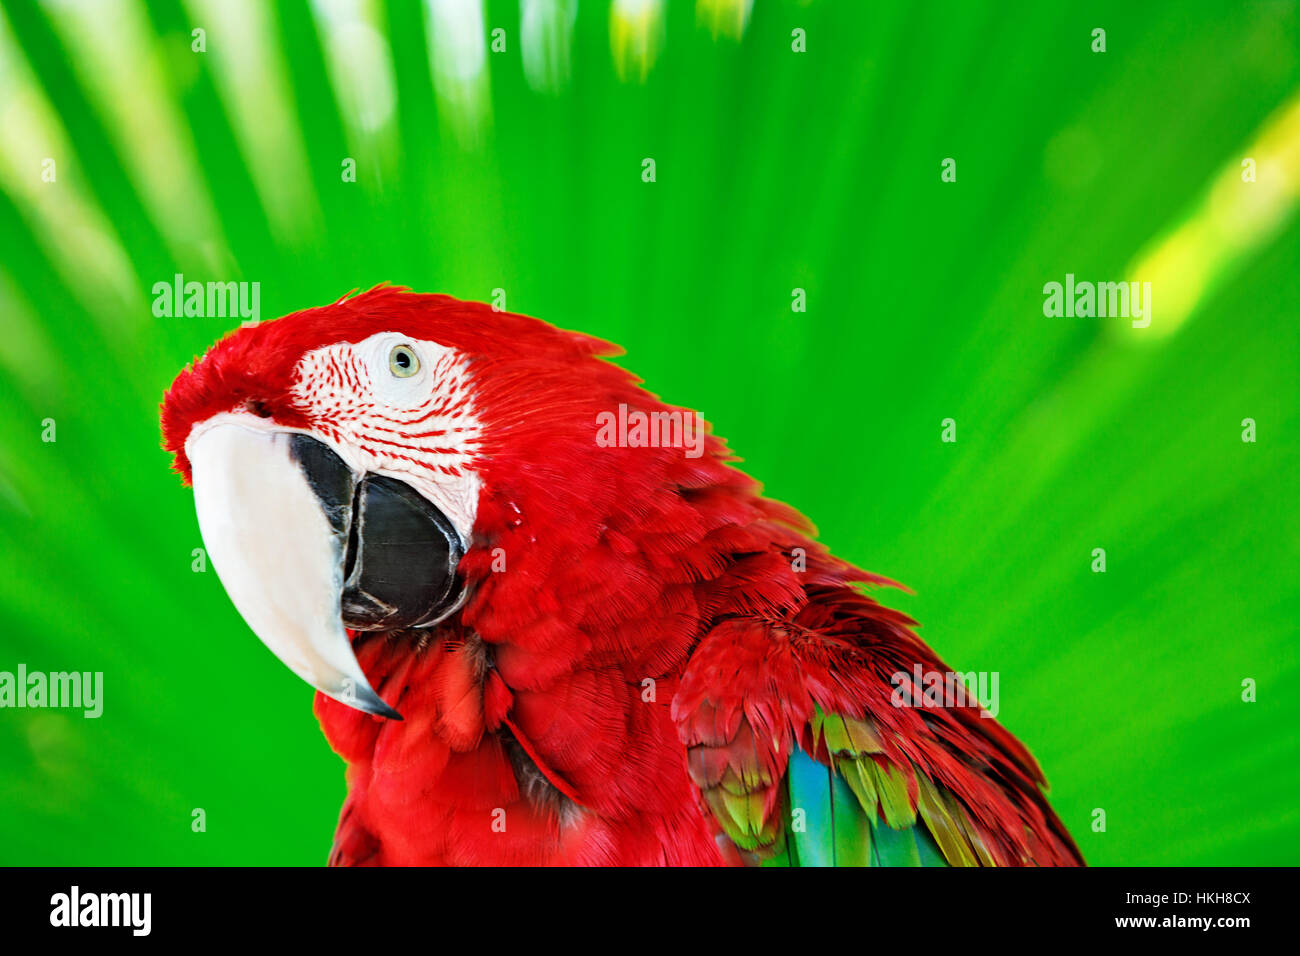 Portrait de l'ara rouge contre Parrot Jungle. Tête de perroquet sur fond vert. La nature, la faune et les Photo Stock